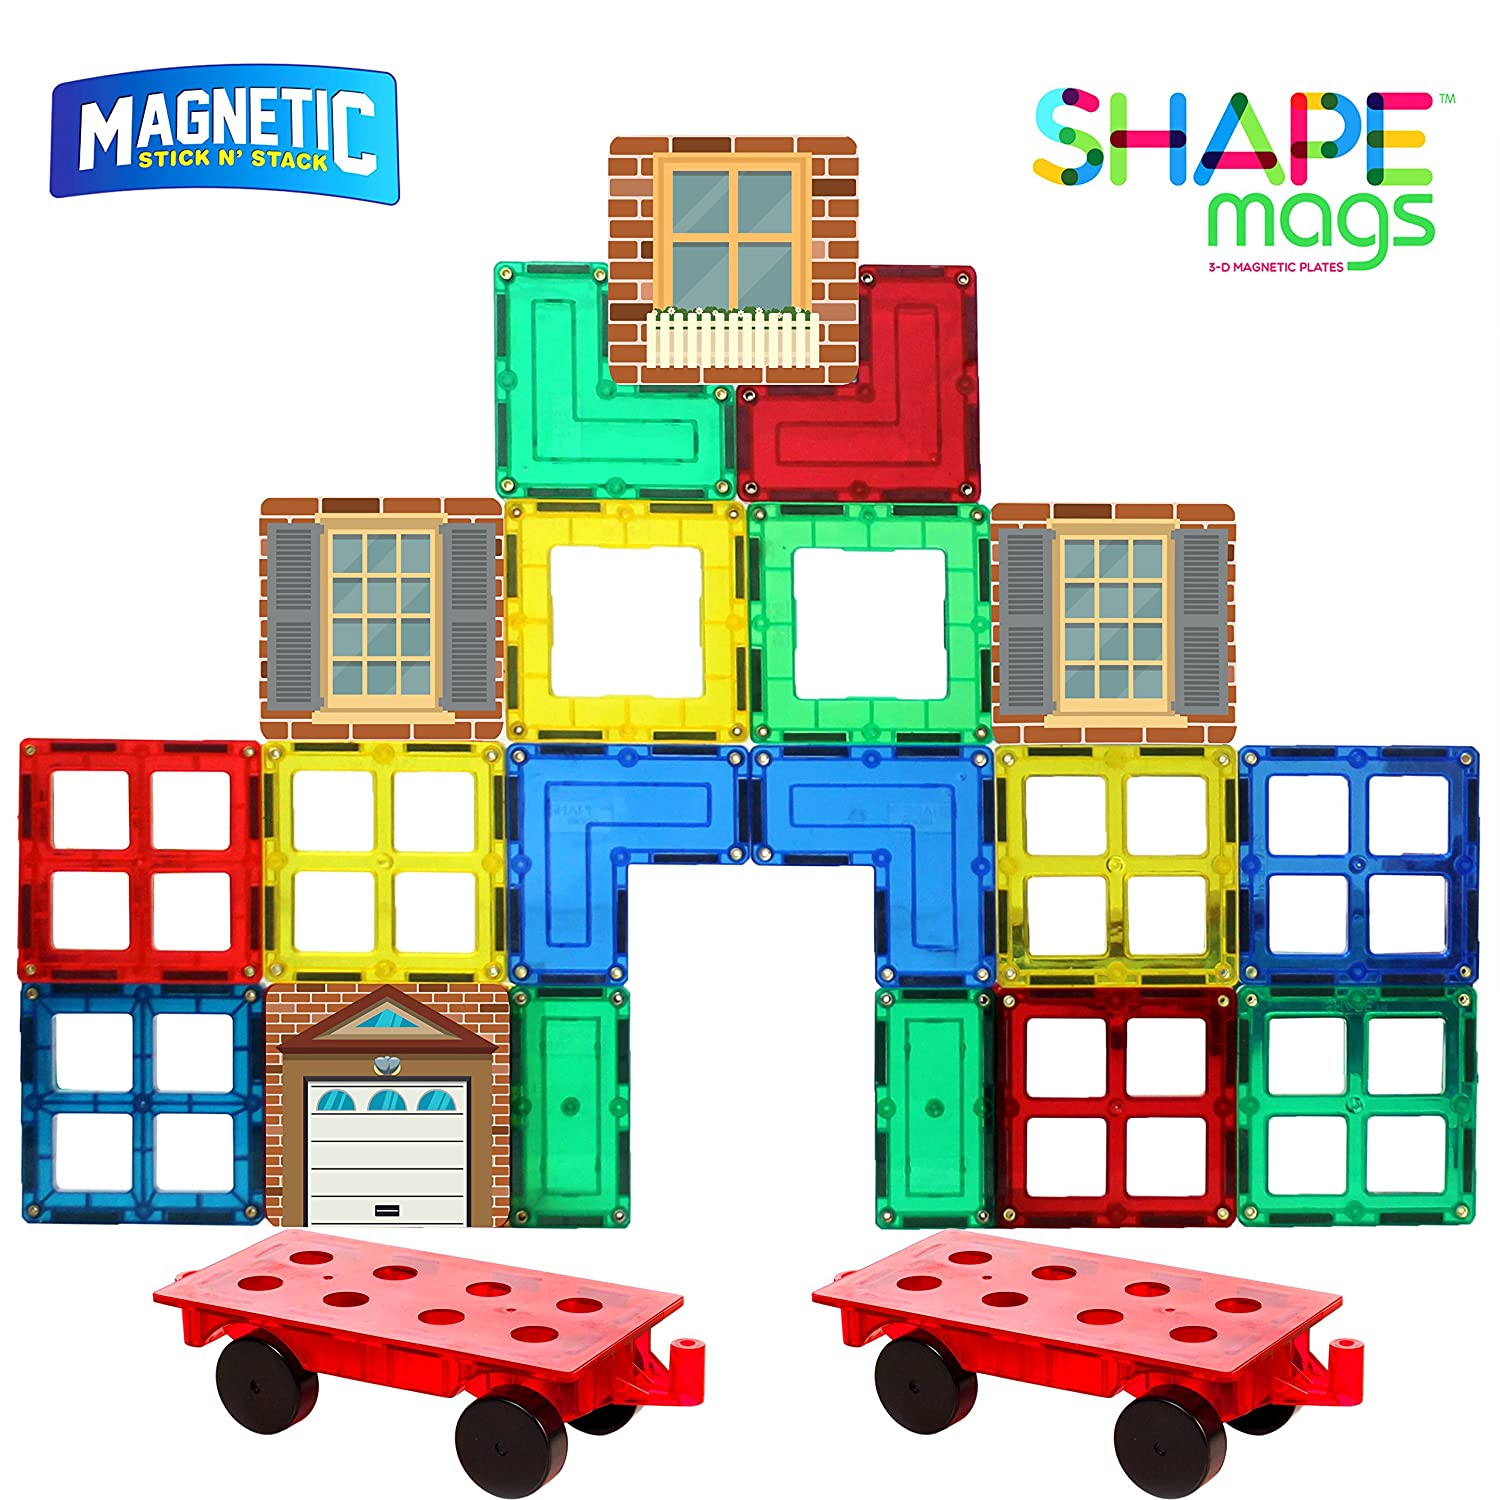 Shapemags 54 Piece Accessories Set, Made With Power+Magnets, 42 Clear Color Tiles, Includes 12 Stile Mags 2 and Car Bases Review